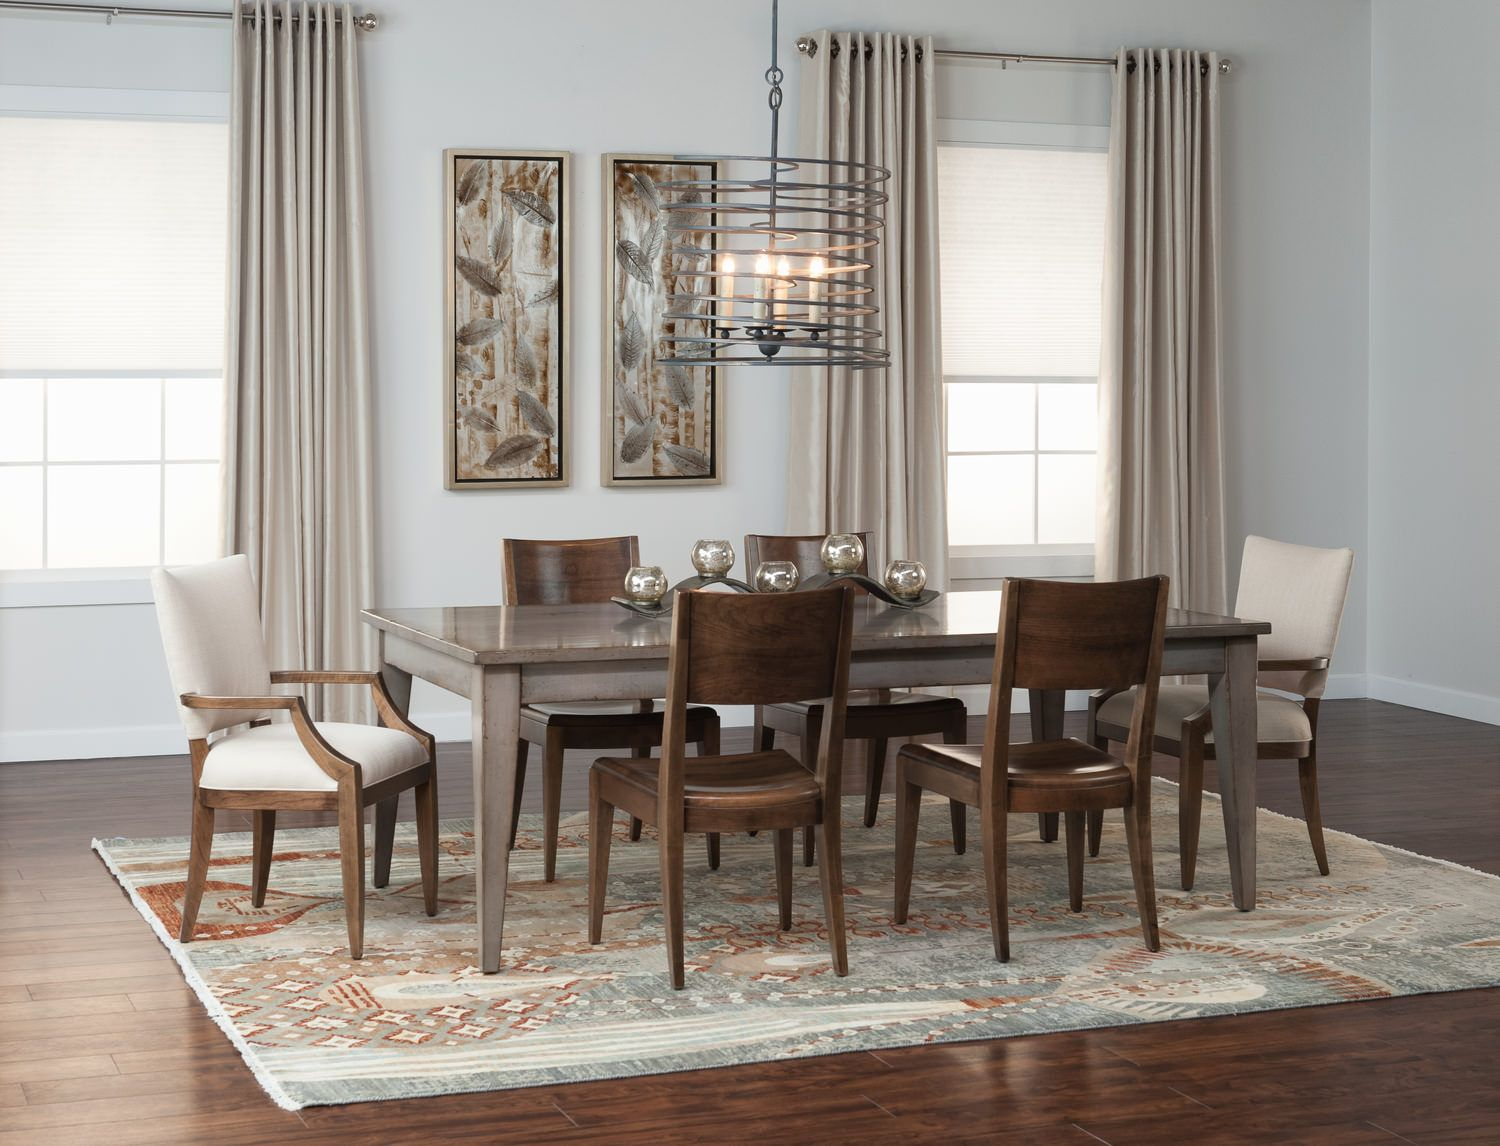 Hansel 5-Piece Dining Set   Dining sets, Dining room table and Dining